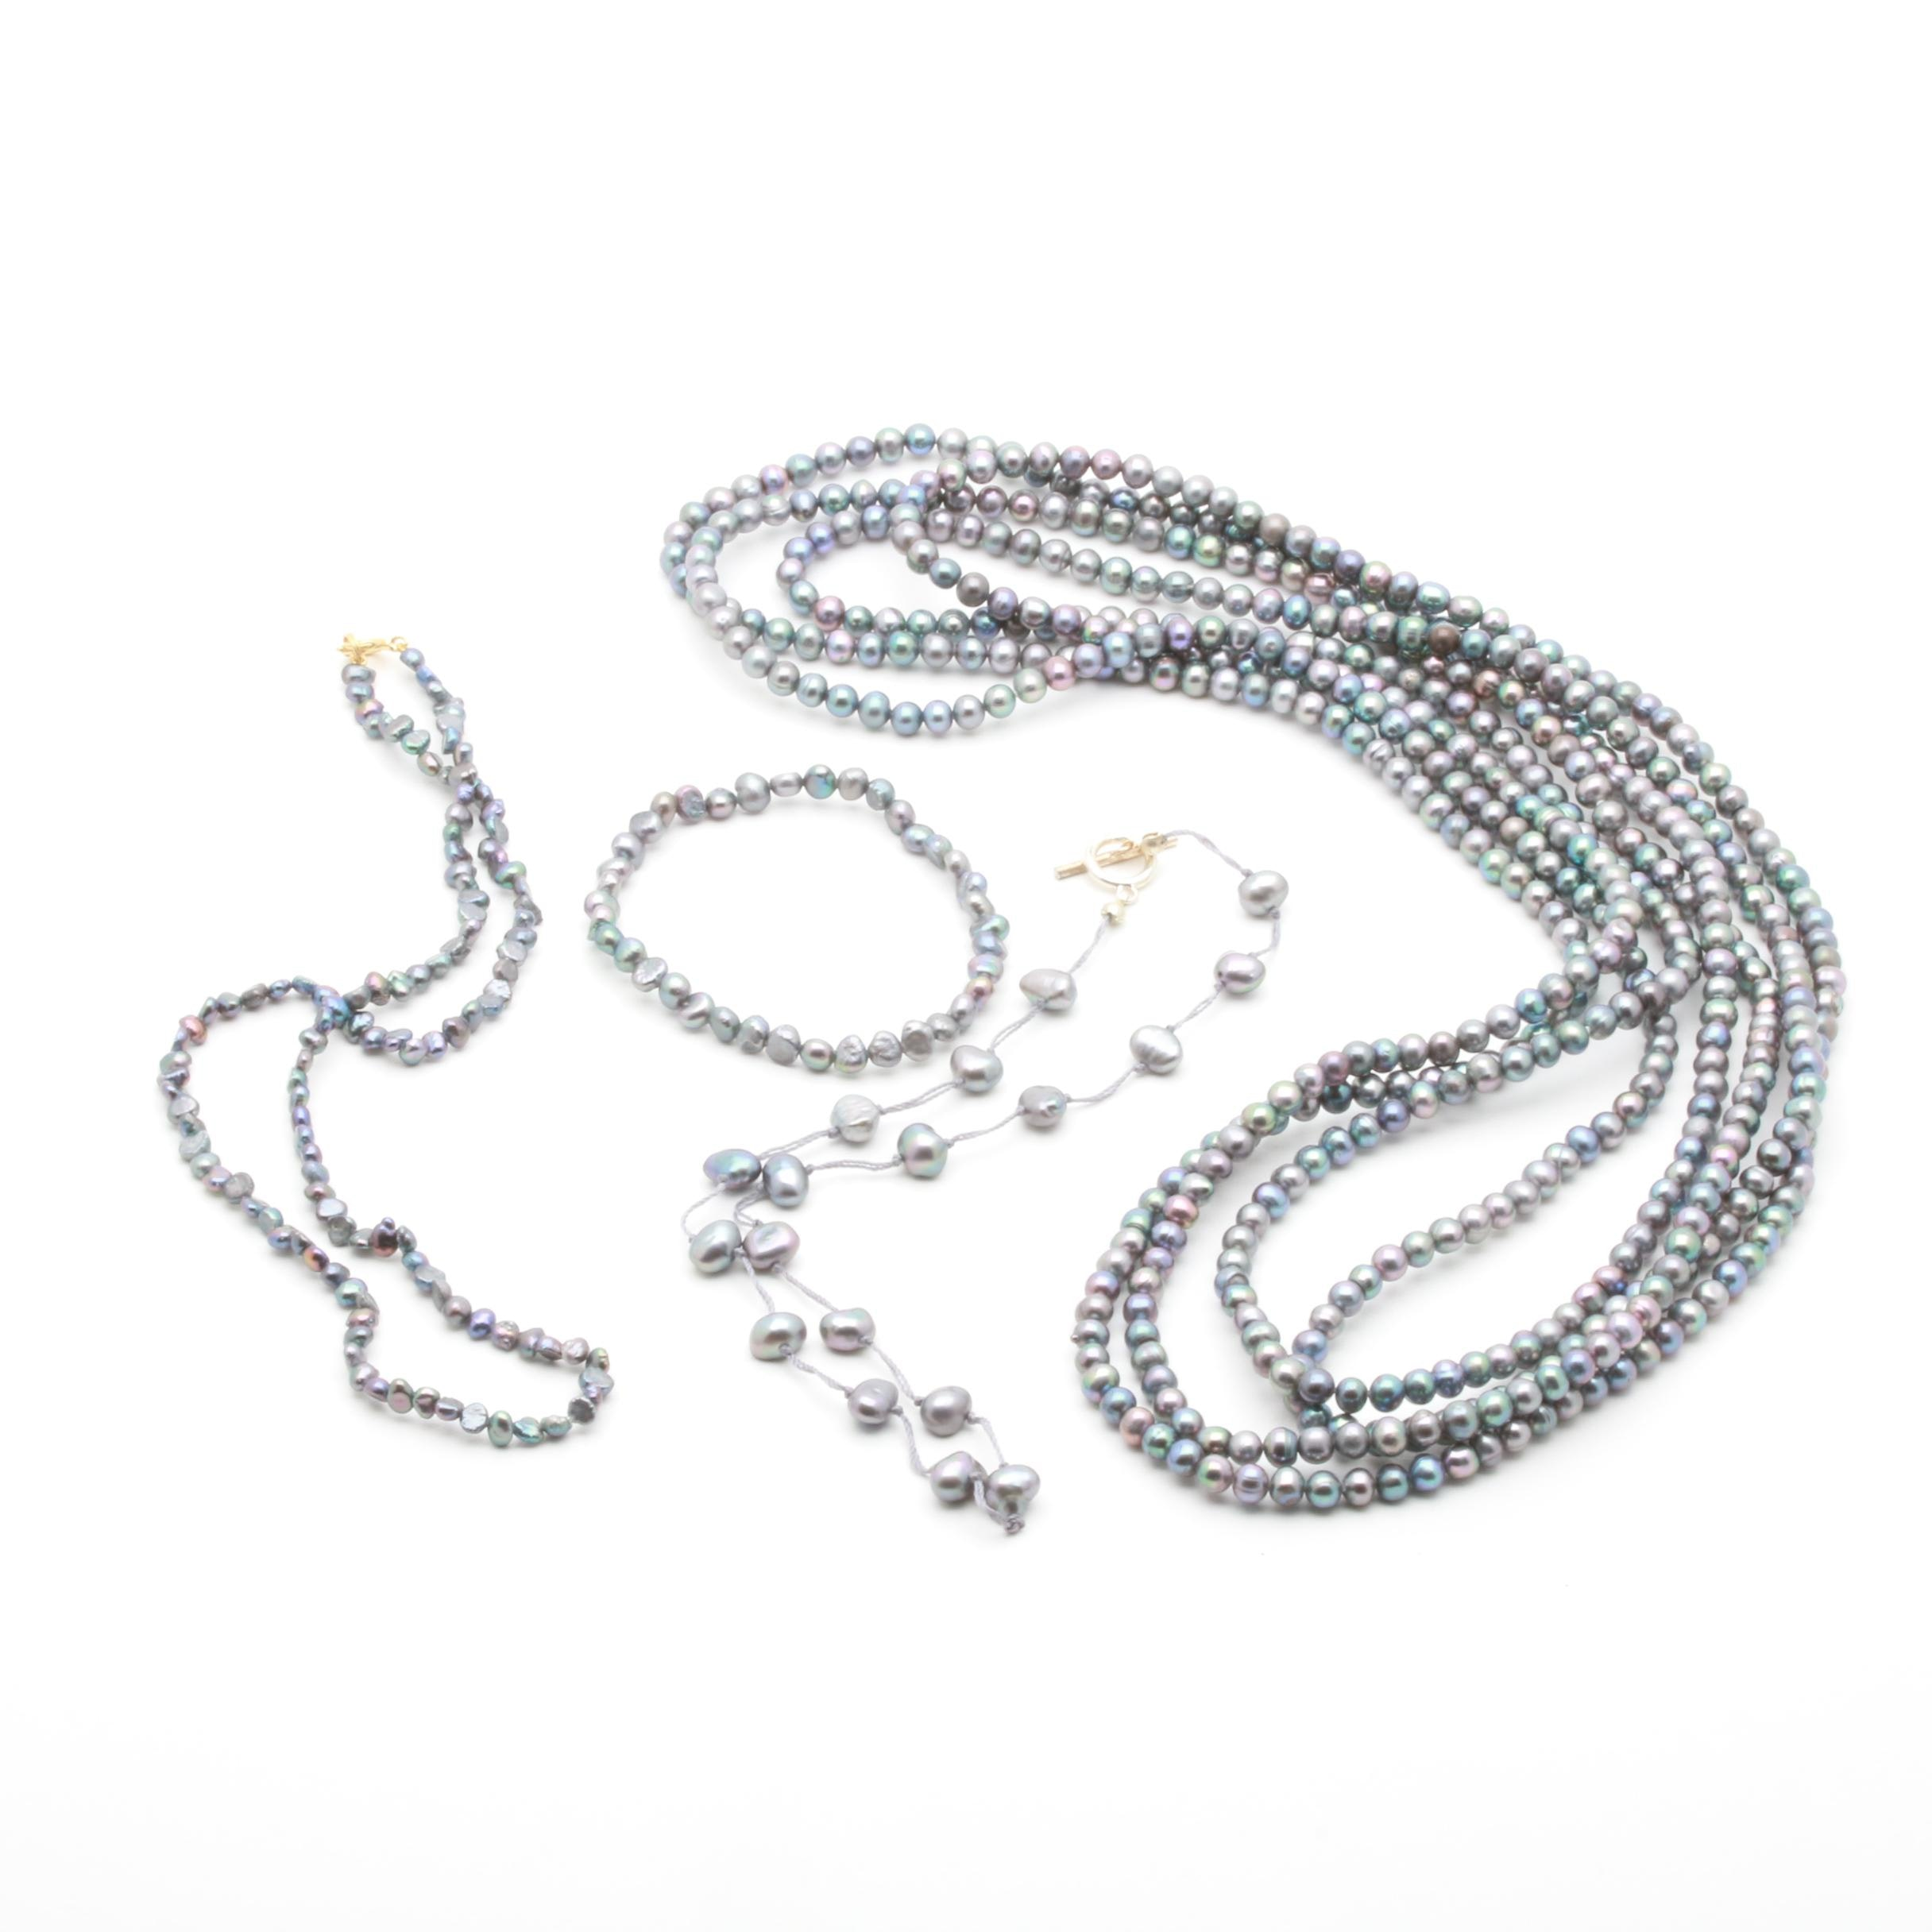 Sterling Silver Cultured Pearl Necklace and Bracelet Assortment